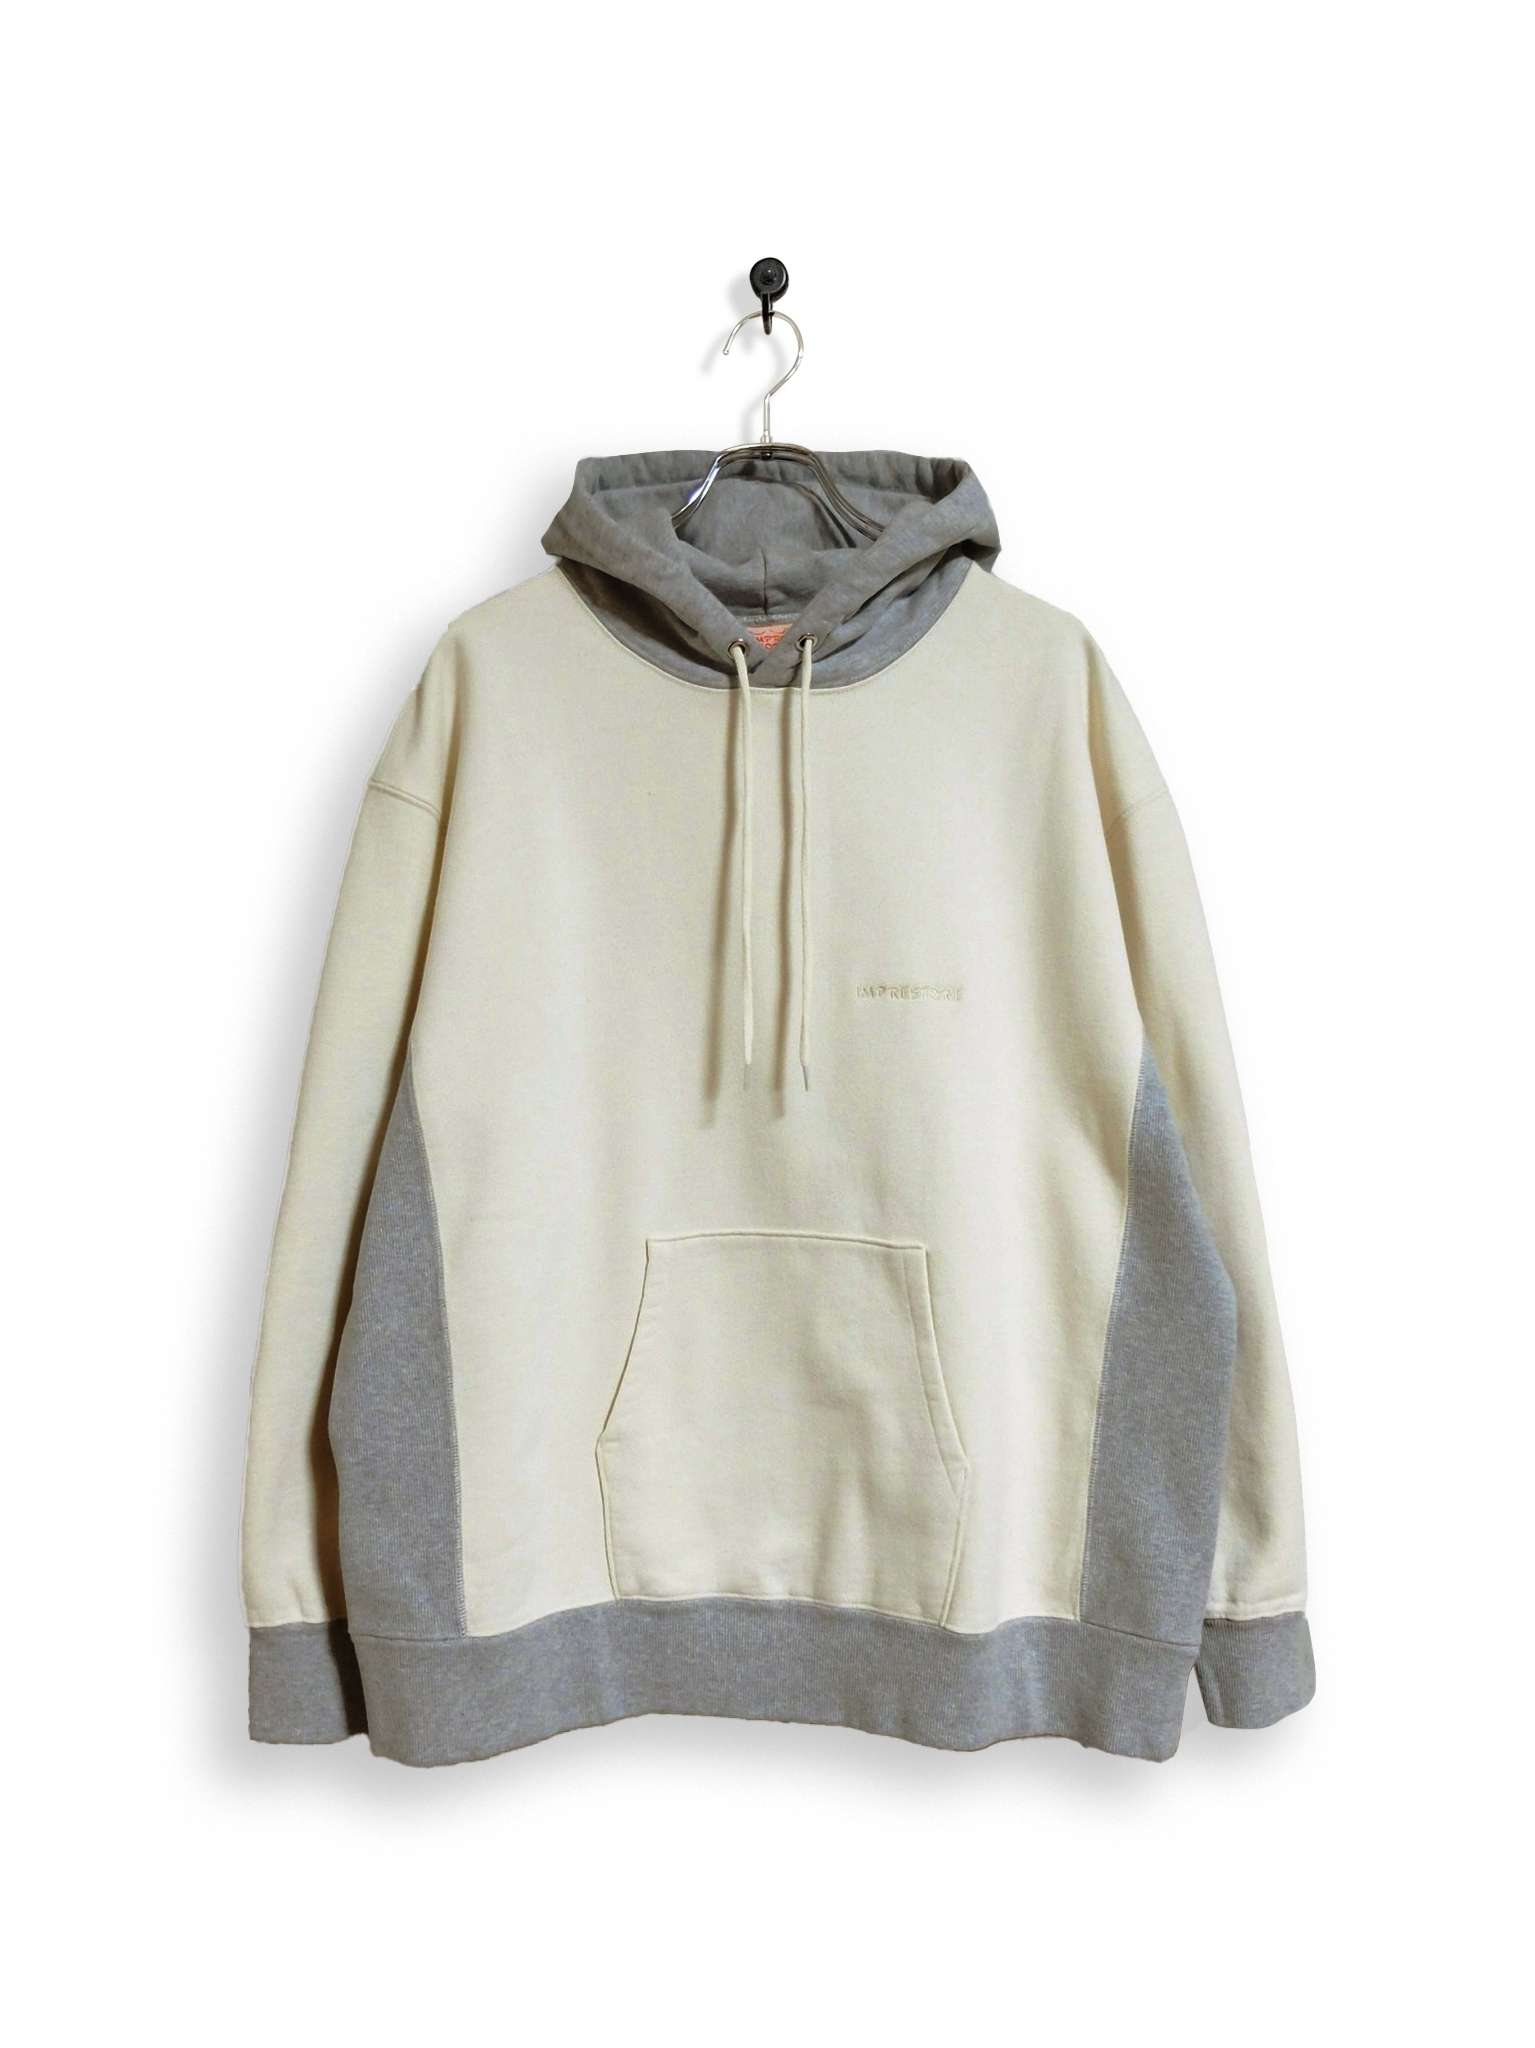 Original Hooded Sweatshirt / 2tone / white × gray